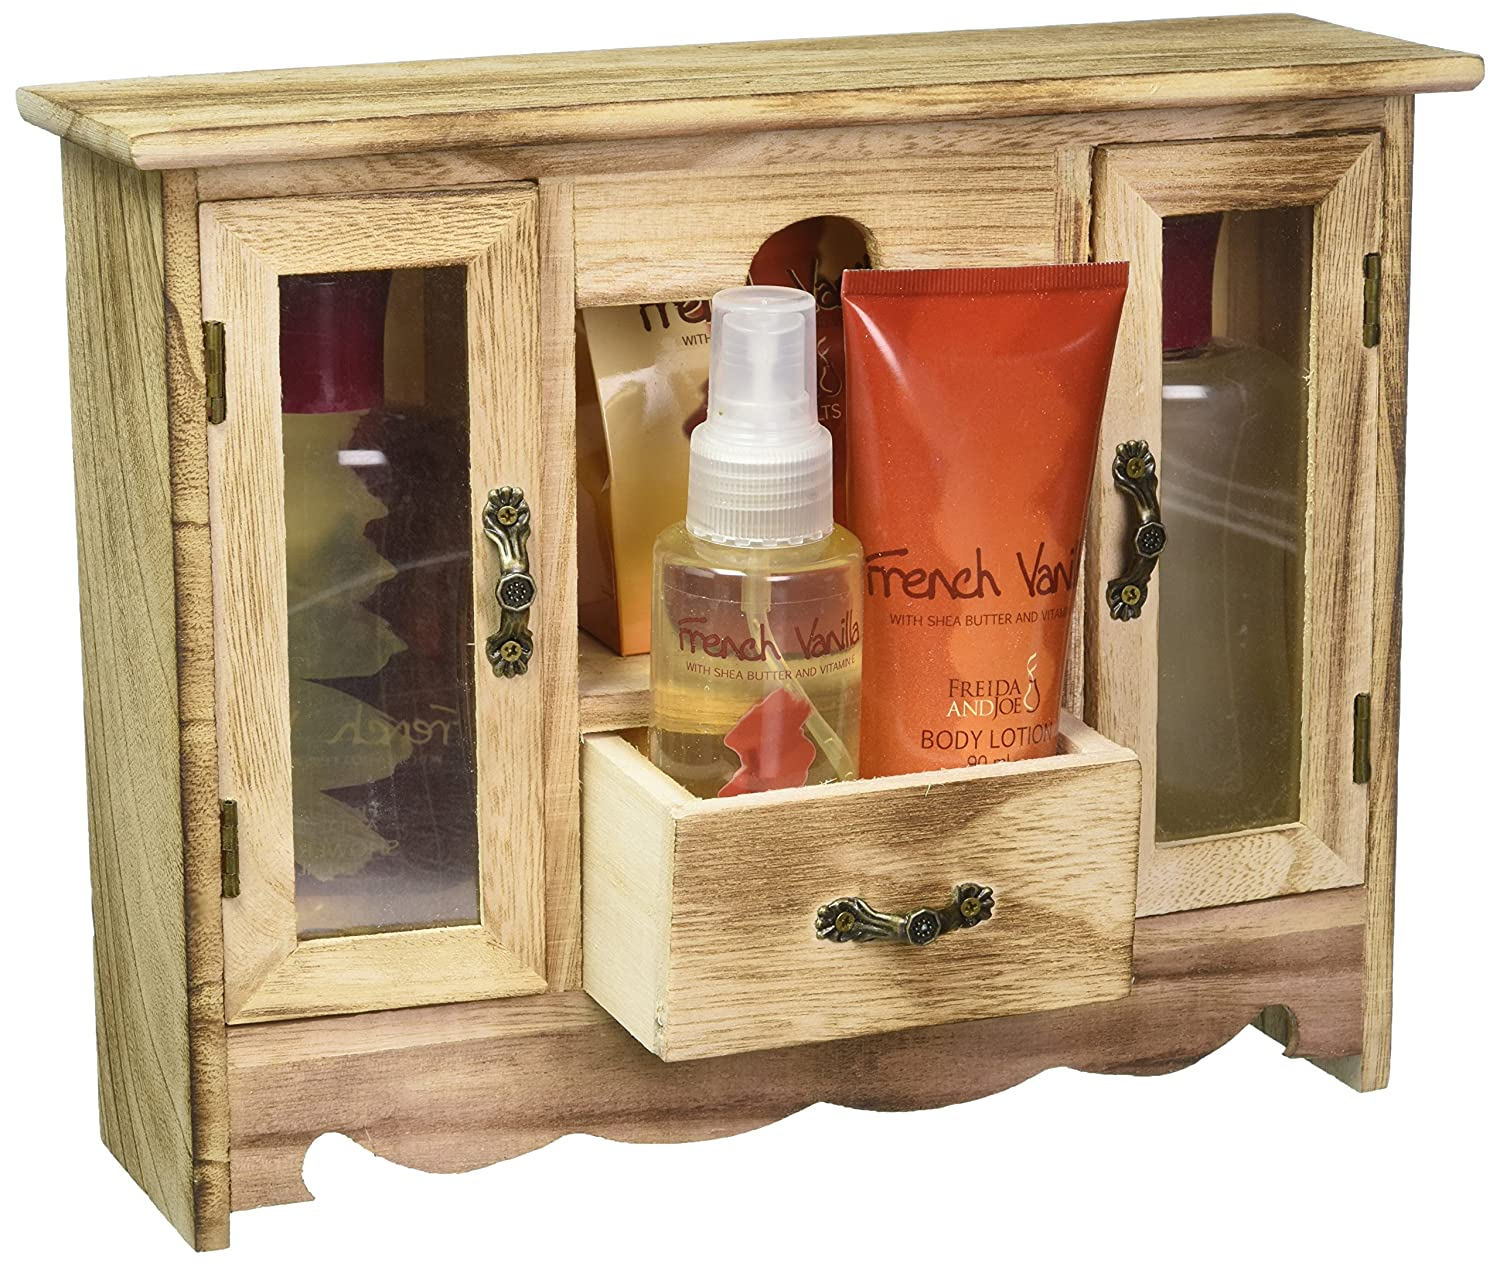 French Vanilla Spa Bath Gift Set in Natural Wood Curio,shower Gel,bubble Bath, Bath Salt,body Lotion,body Spray Freida & Joe FJ-32